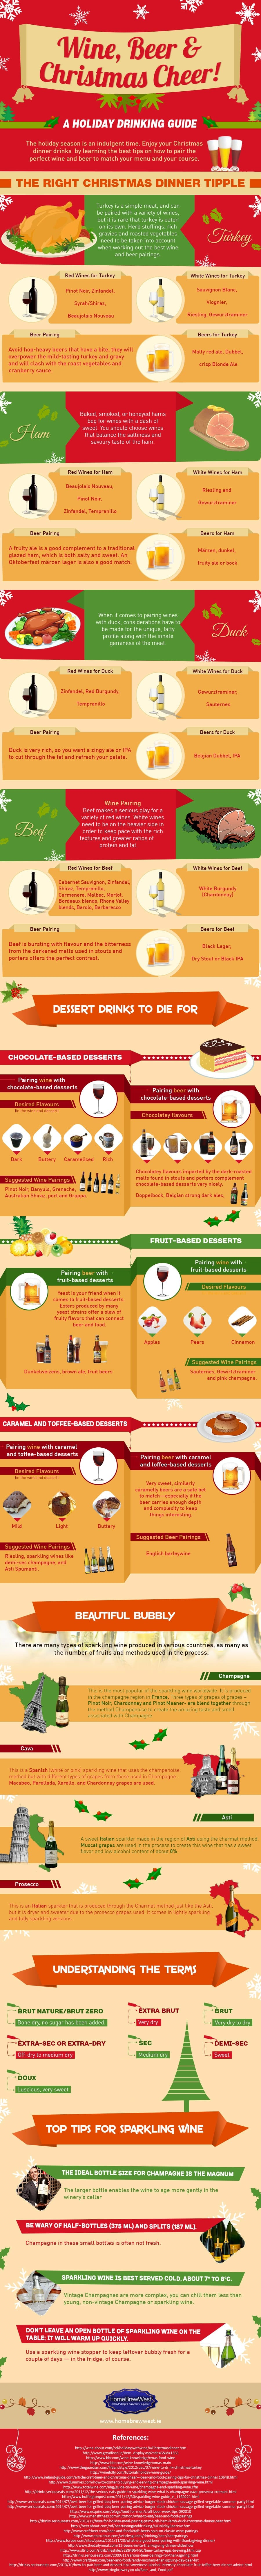 perfectly pair wine beer with christmas dinner infographic